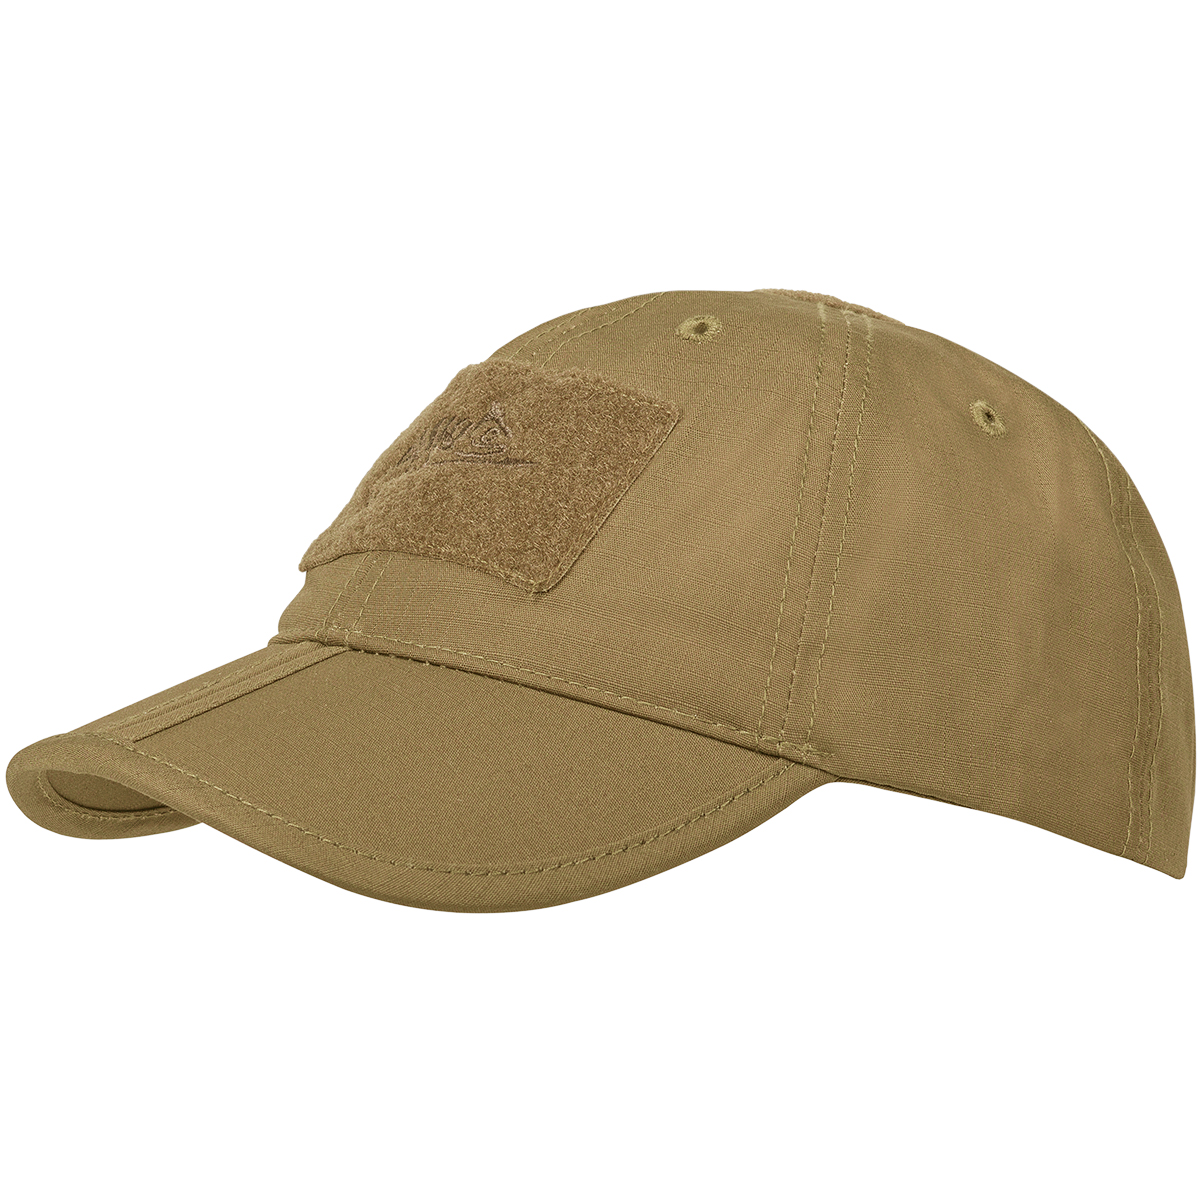 Details about Helikon Baseball Cap Folding Military Airsoft Patrol Mens  Ripstop BB Hat Coyote 56aa0a8cd4d